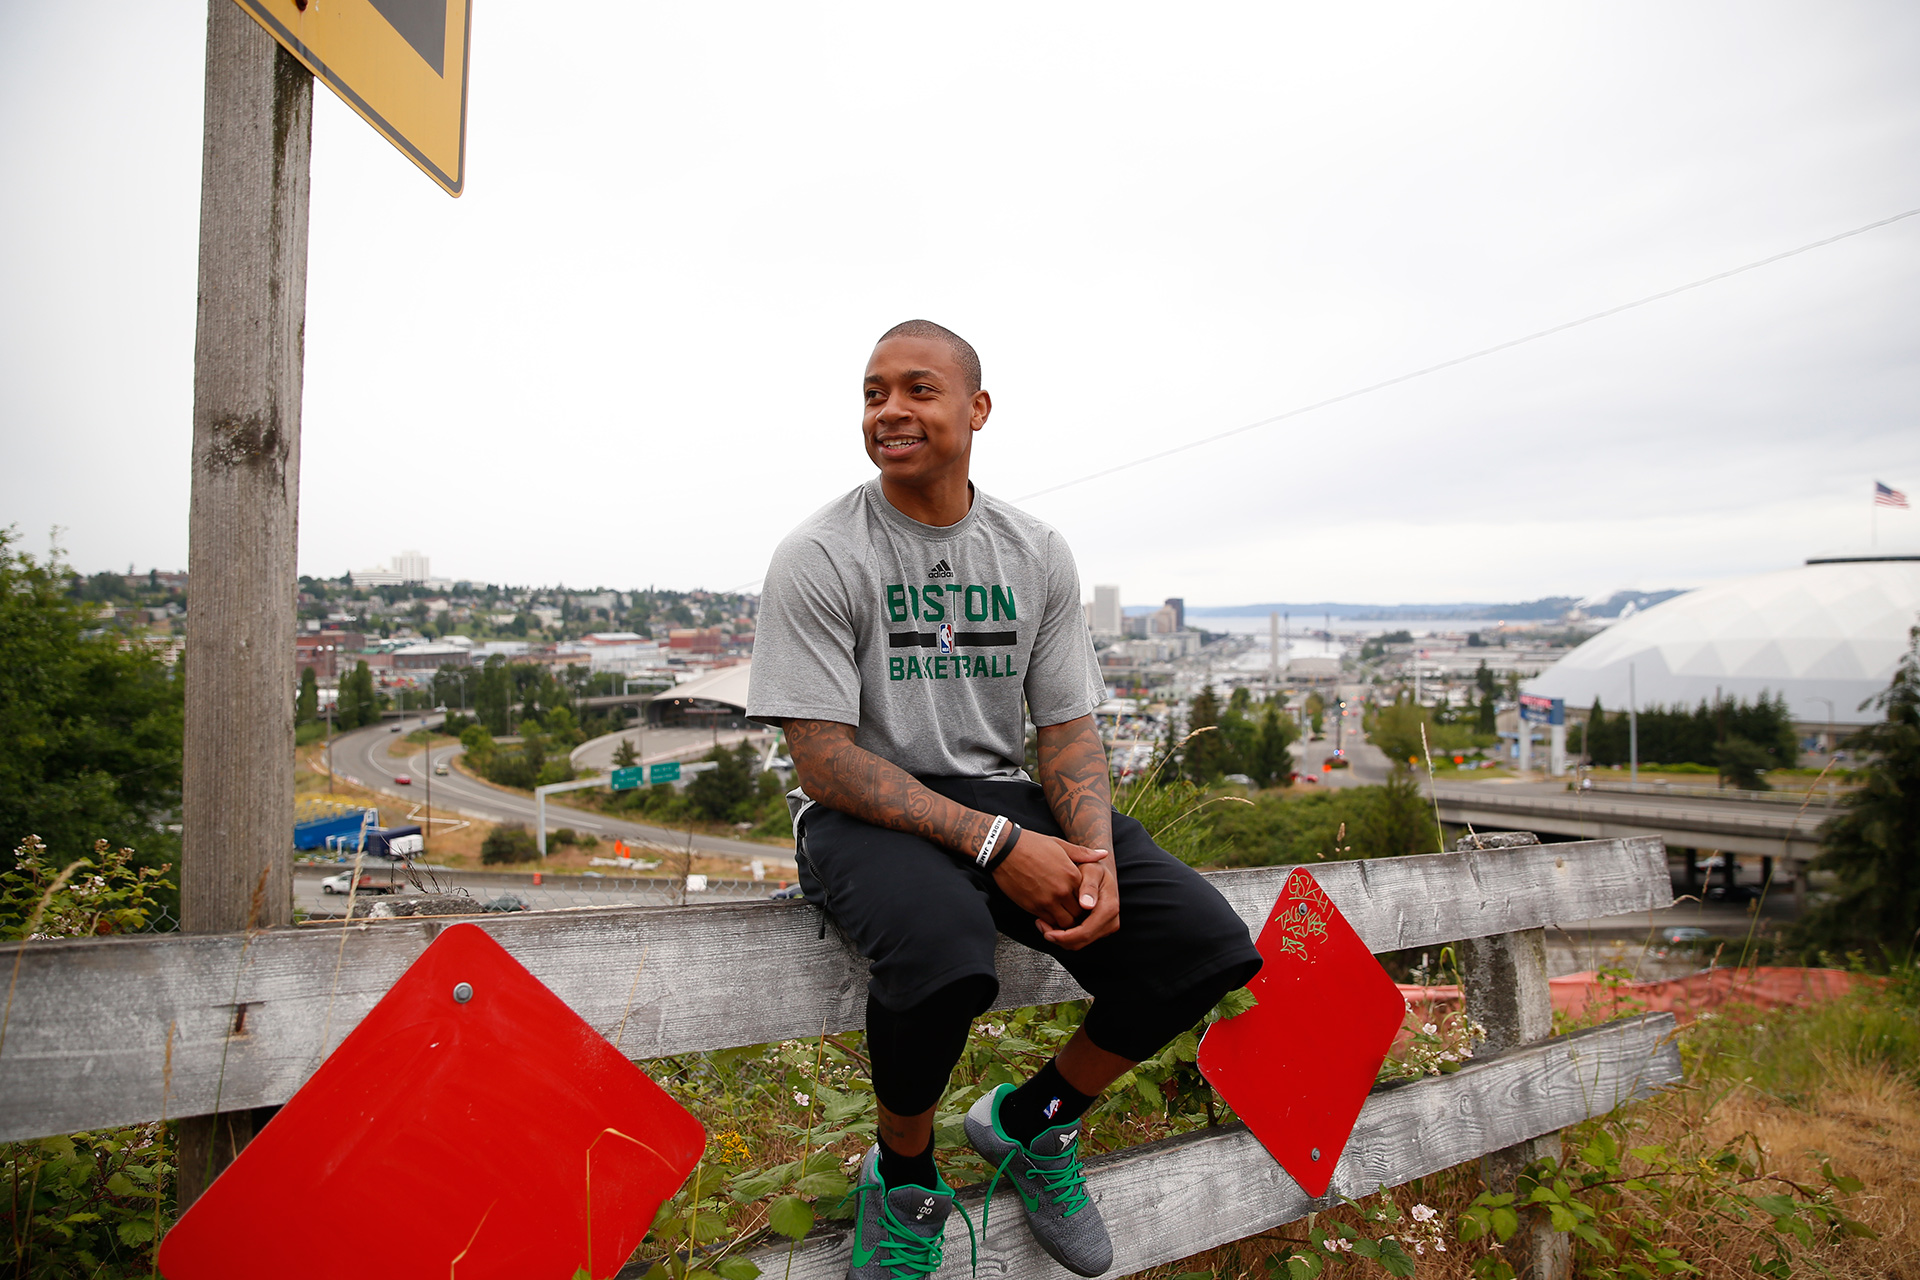 201605_28_JJ_Isaiah_Thomas_Jr_1642